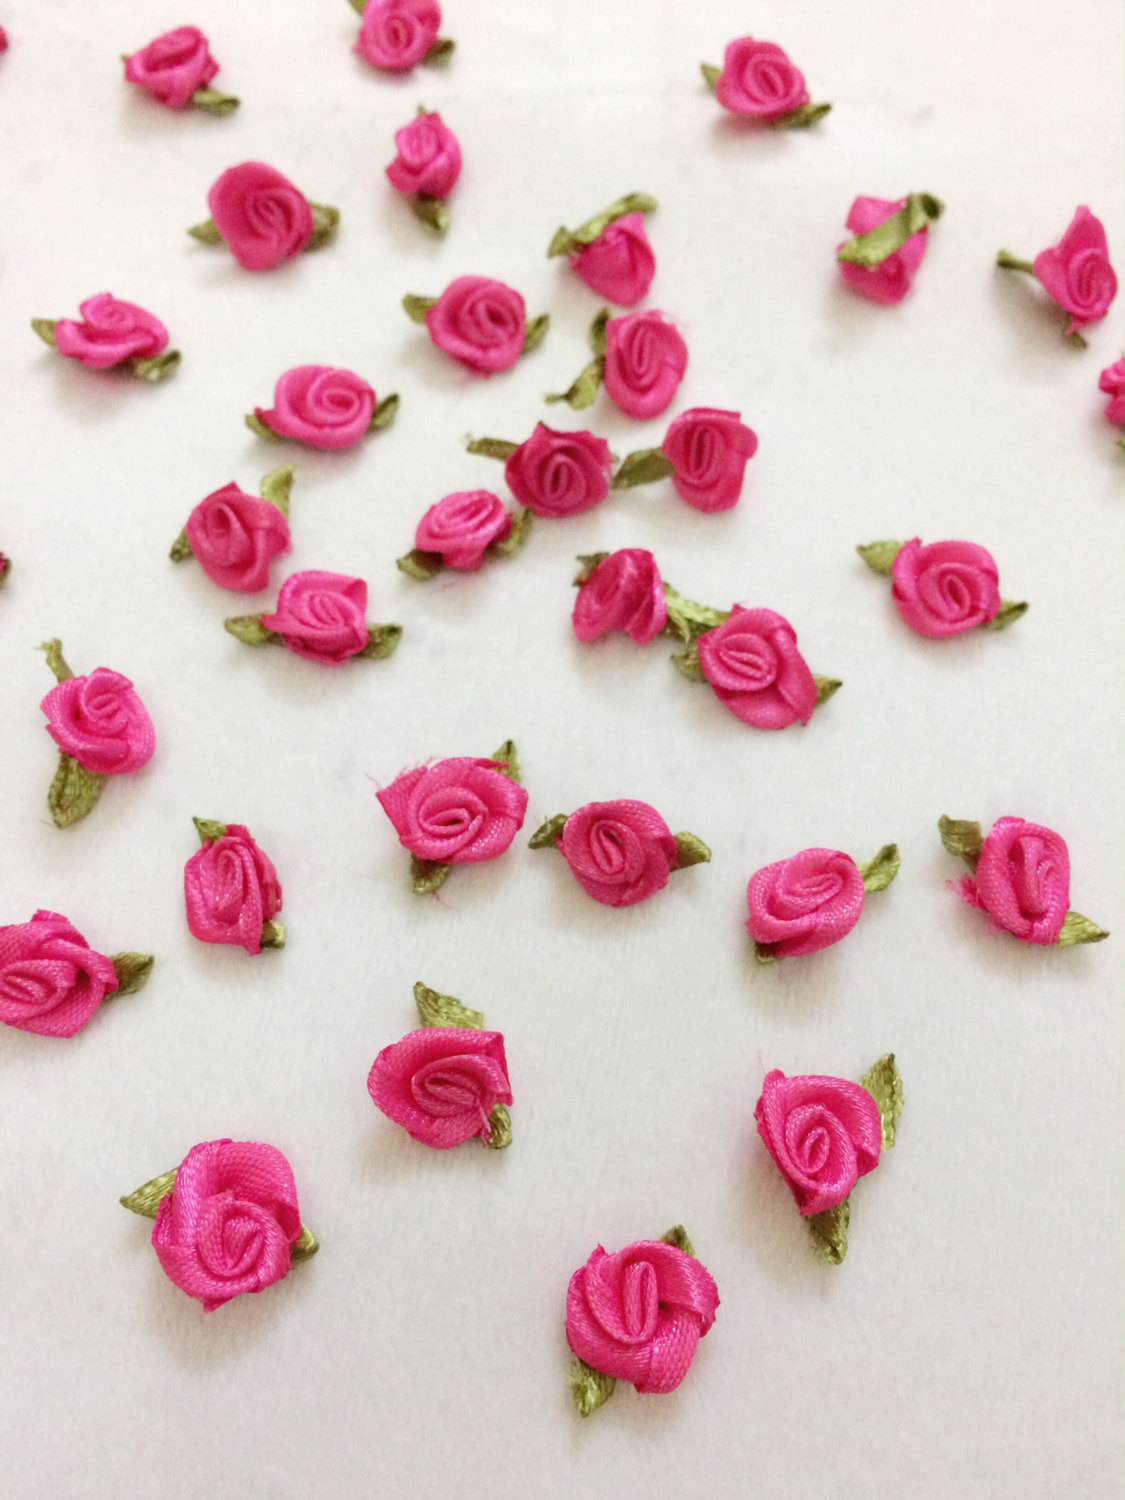 50 Hot Pink Satin Roses,Mini Rose Buds with Leaf,Craft Flowers,Sewing Supplies